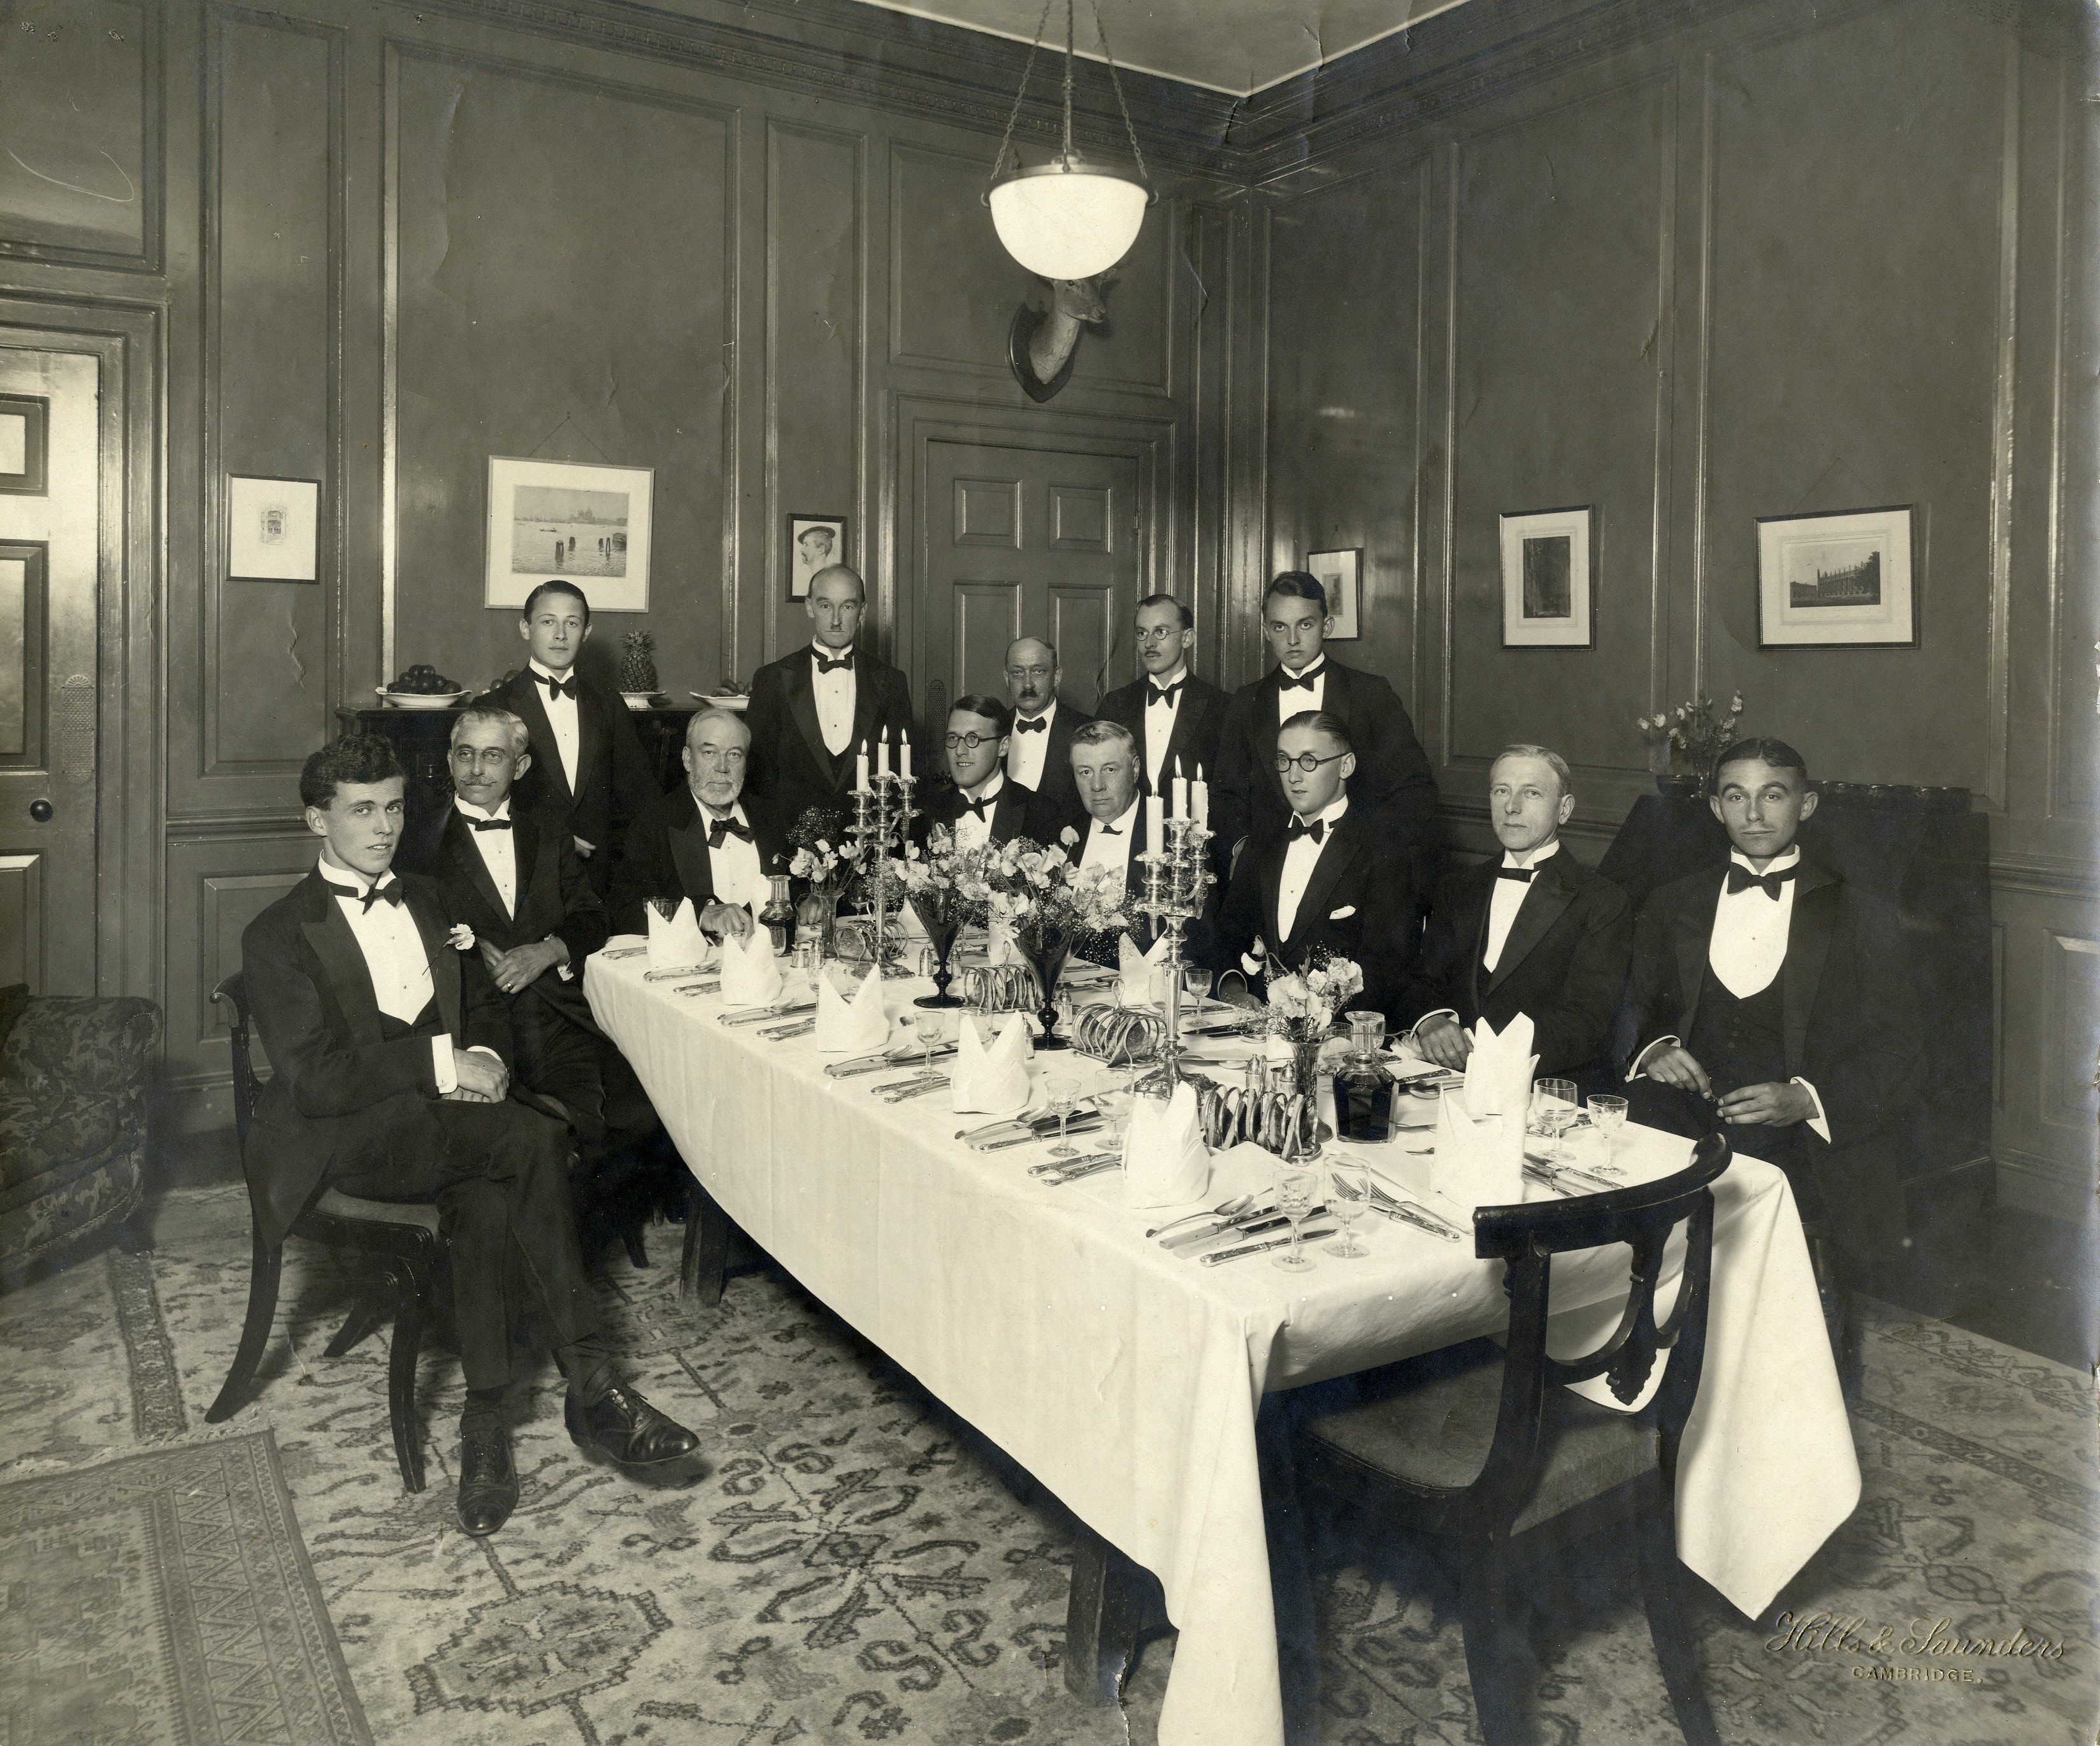 Arthur Henry 'Daddy' Mann at a dinner party given by Rutherford Ikin in G1, with choral scholars, in honour of Mann's 50th anniversary as organist. Photograph taken by Hills and Saunders, 1926. [KCPH/2/13]